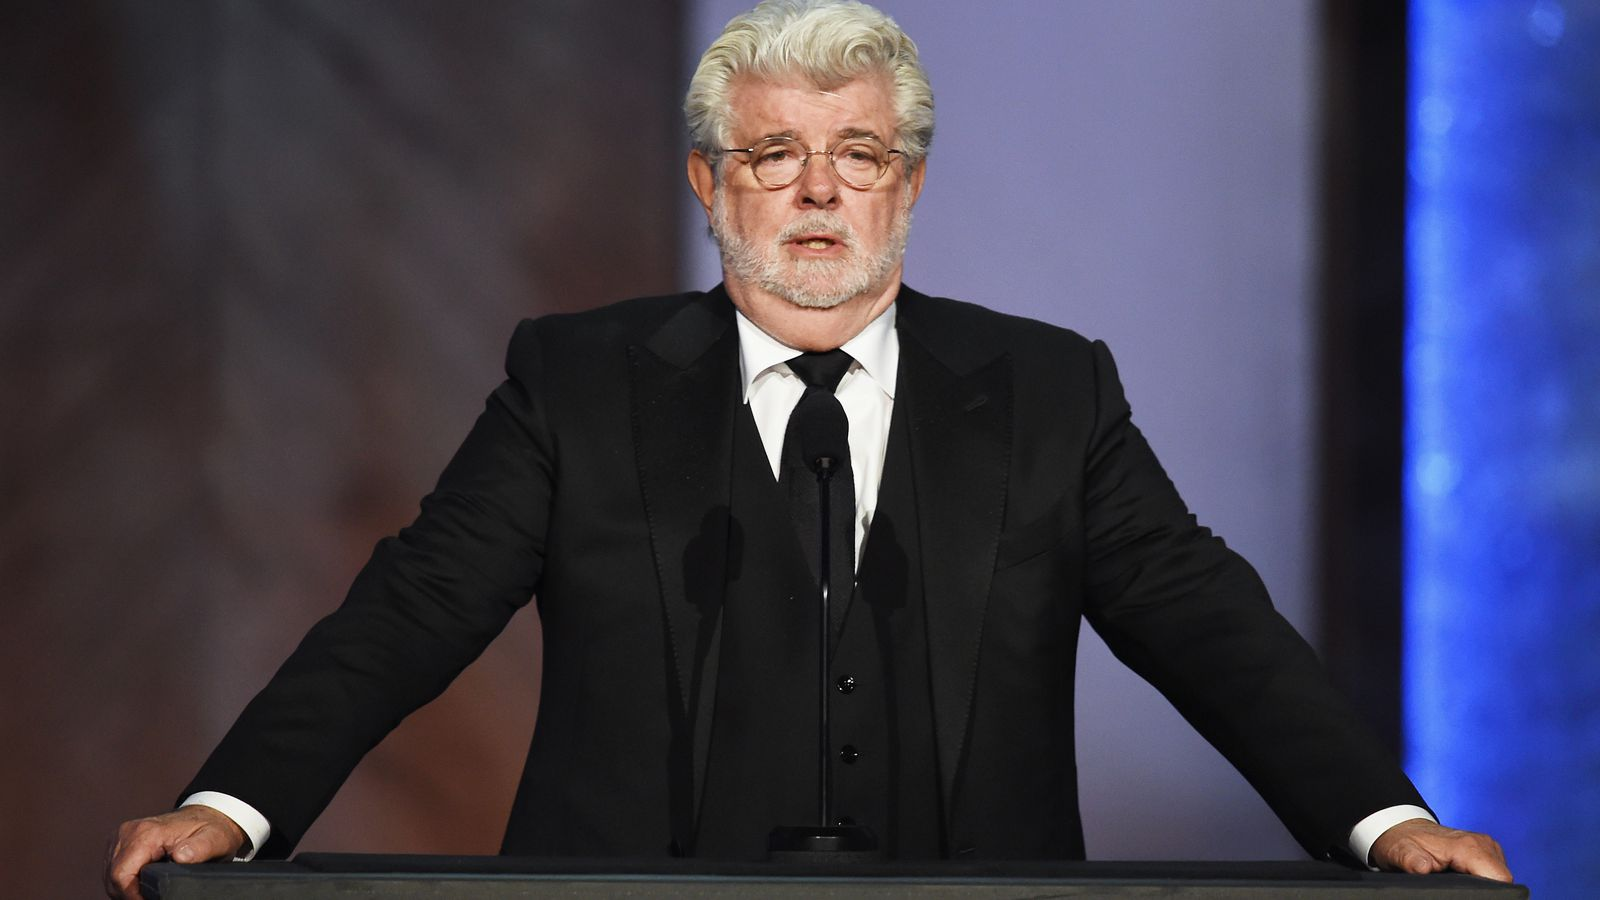 George Lucas reiterates Star Wars is for '12-year-olds ...